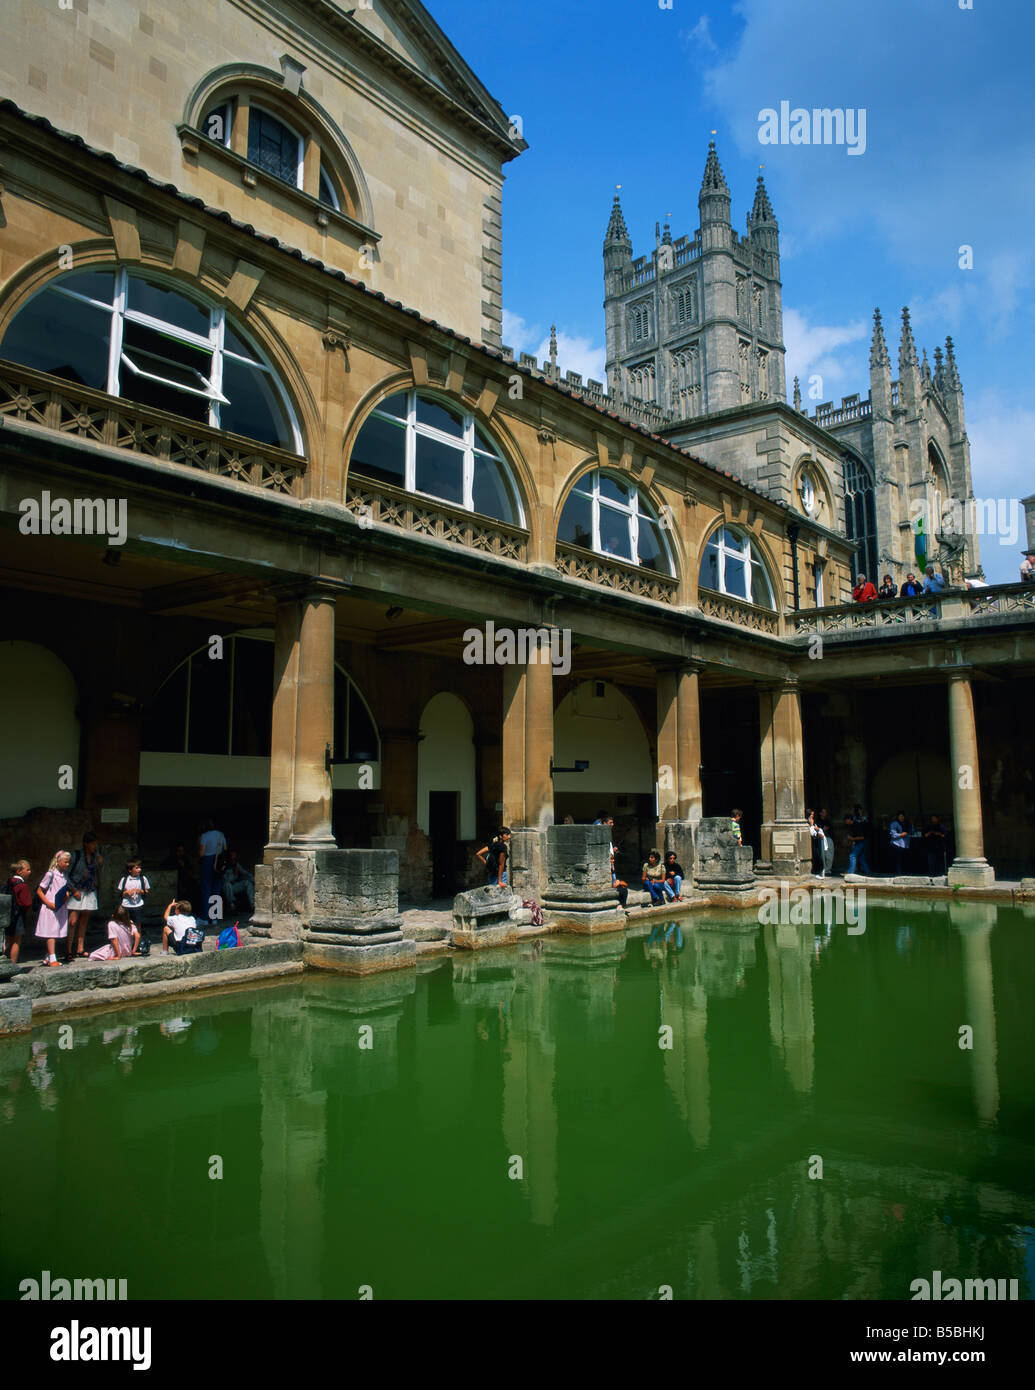 Visitors in the Roman Baths with the Abbey beyond in Bath UNESCO World Heritage Site Avon England United Kingdom - Stock Image